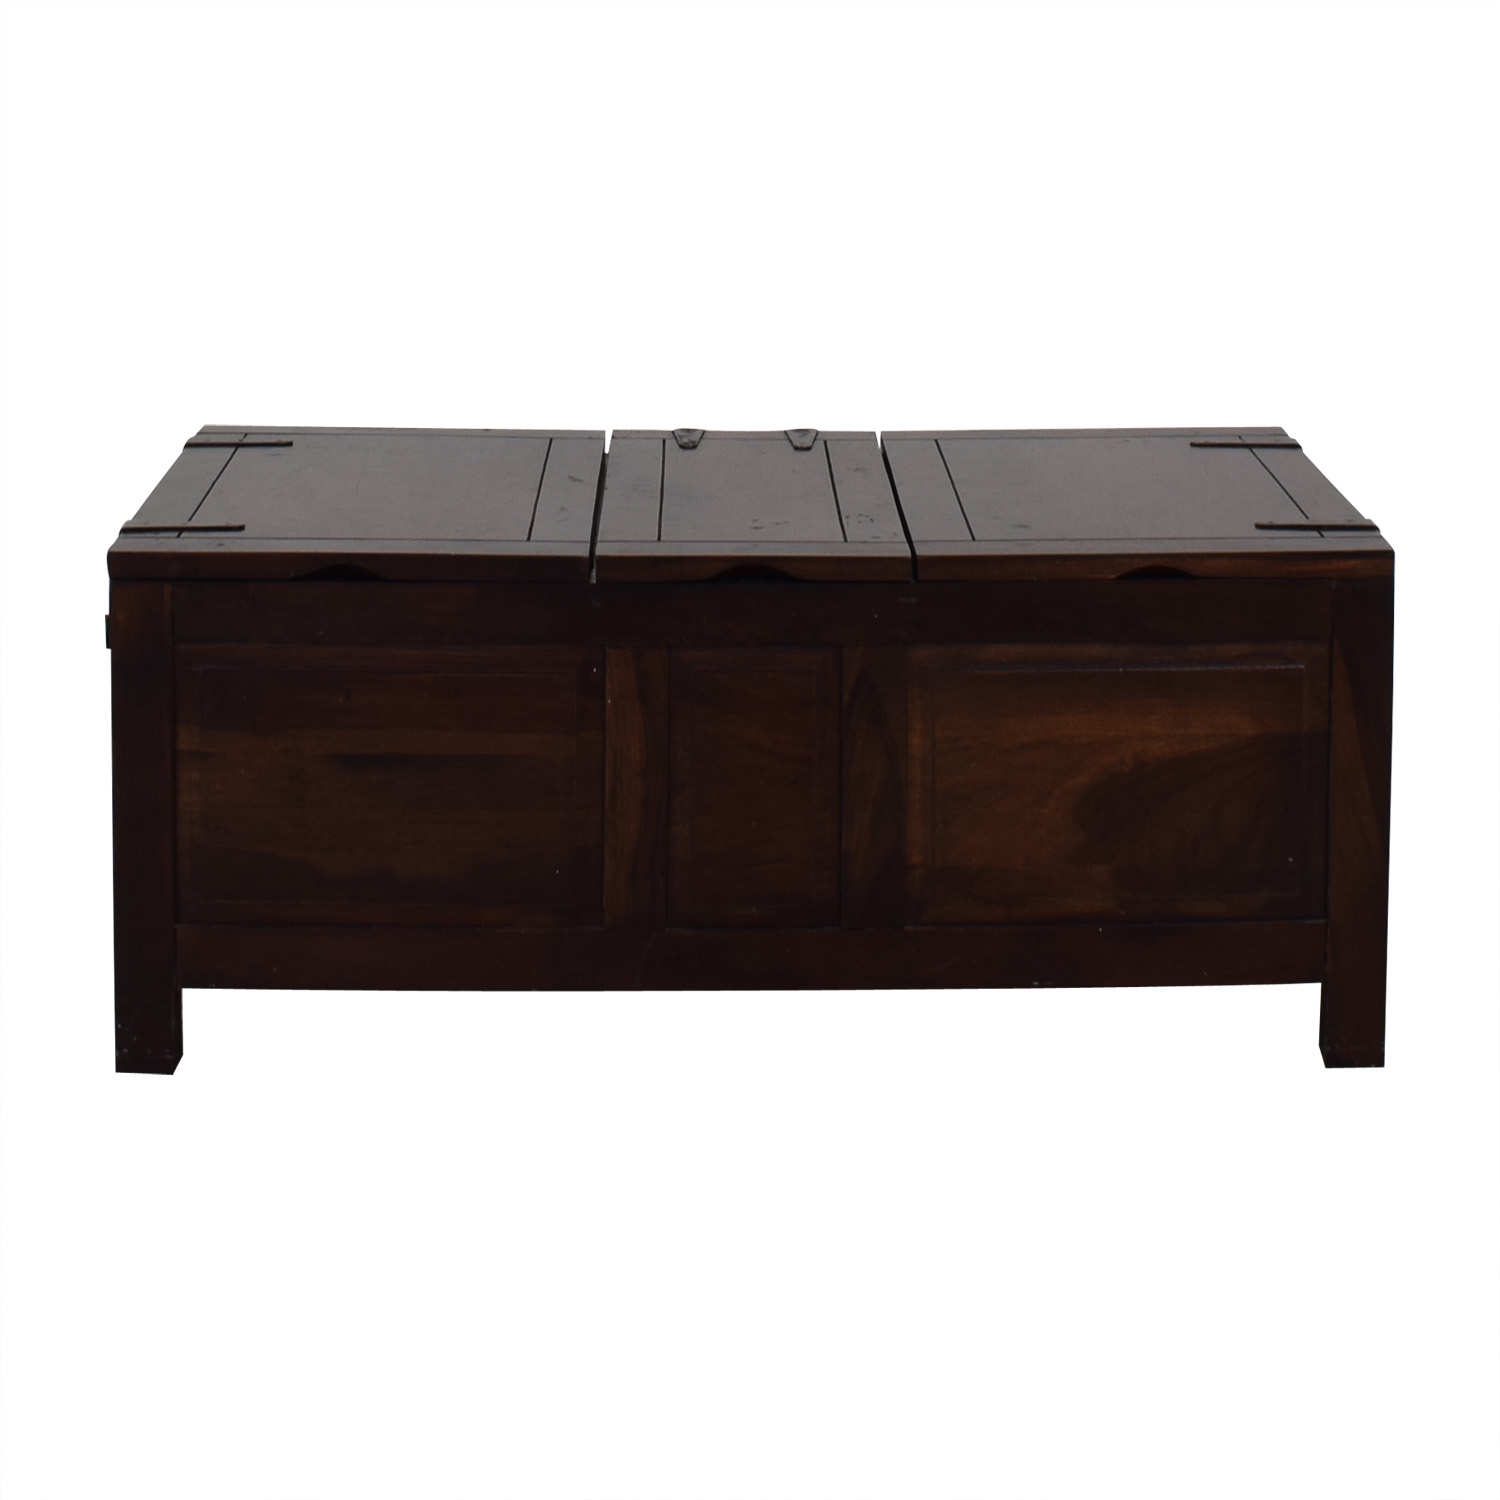 Crate & Barrel Crate & Barrel Coffee Table with Storage coupon